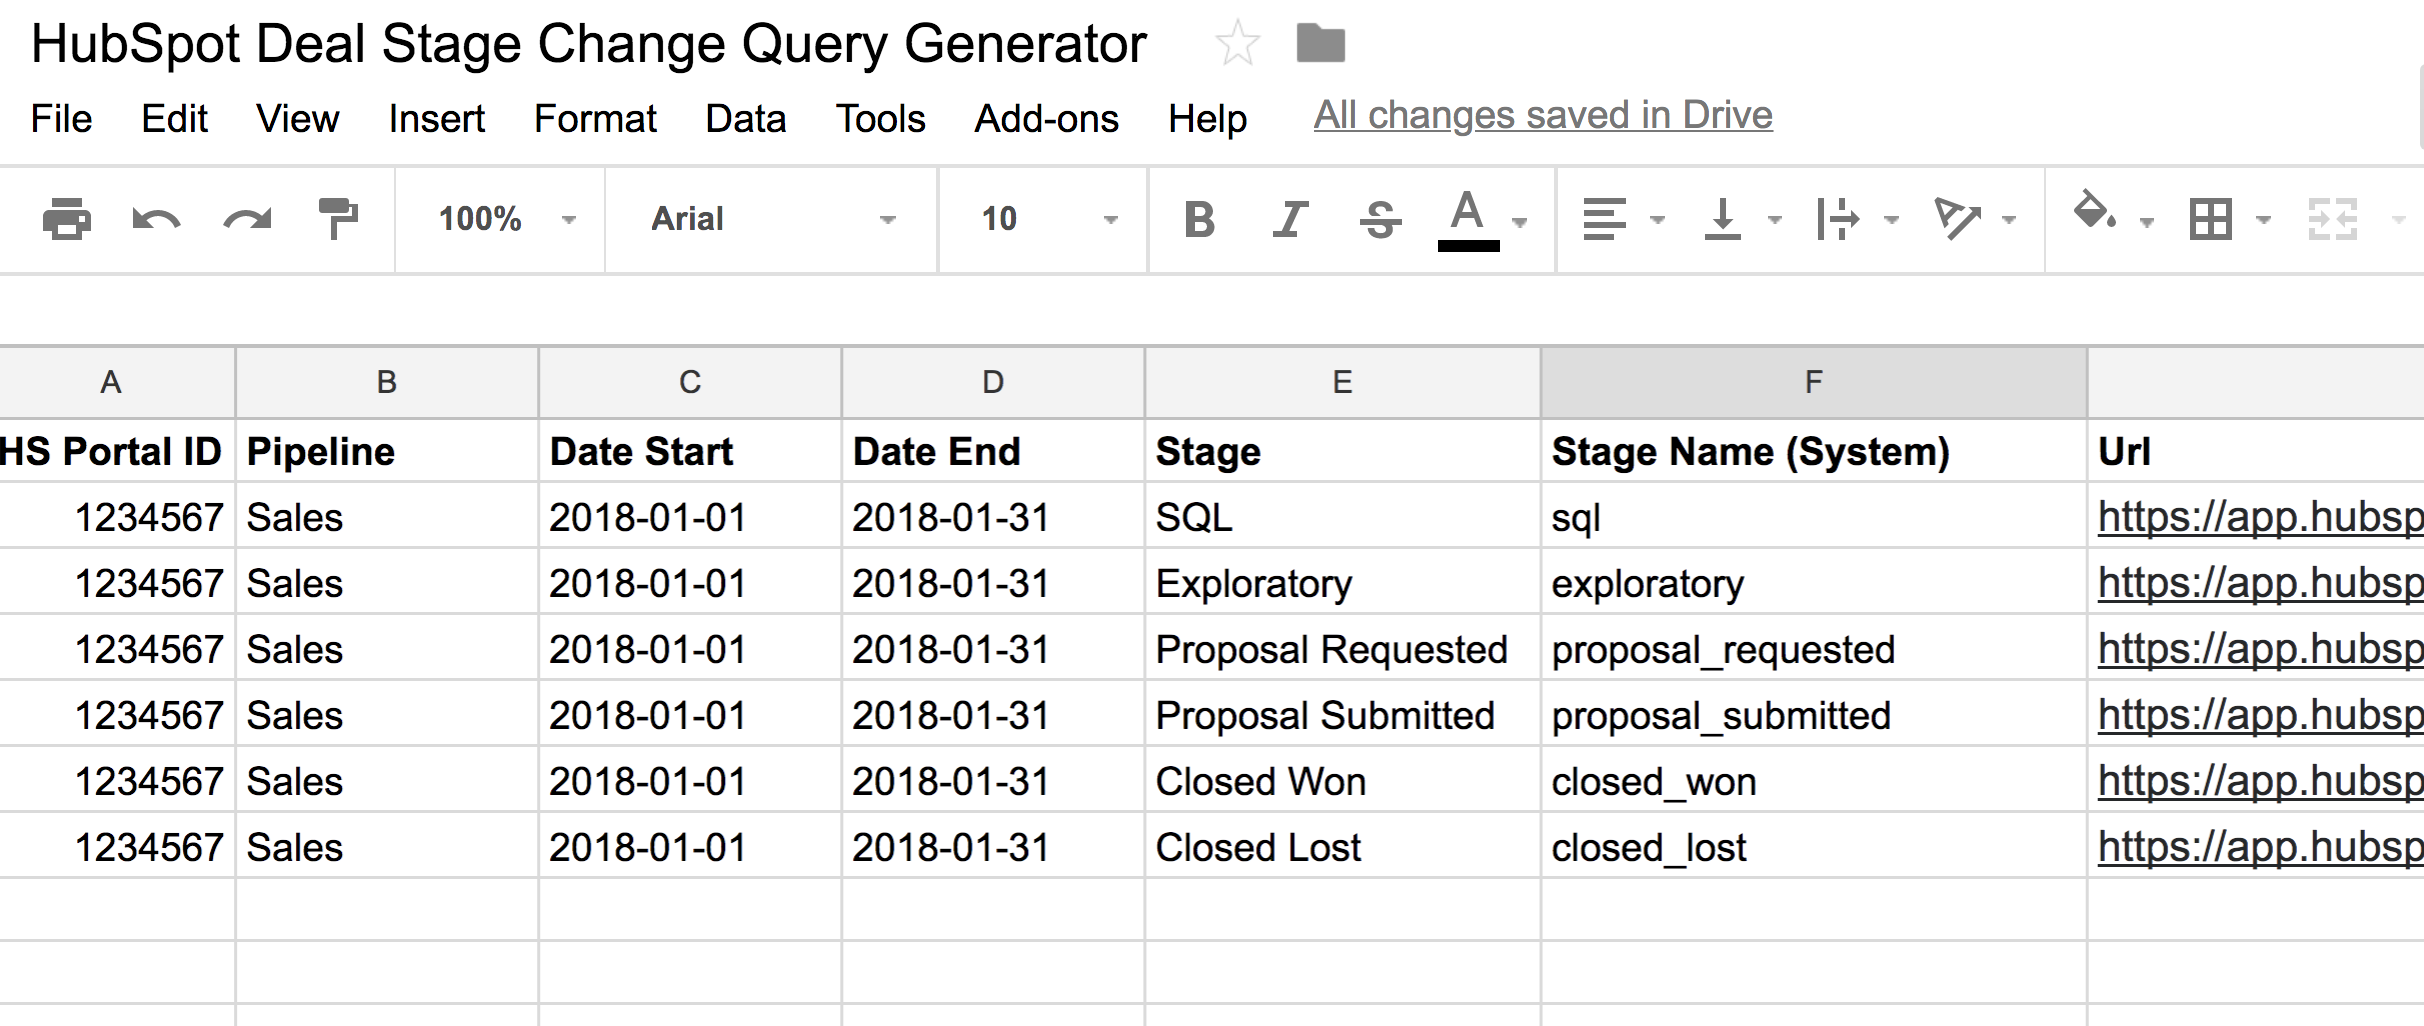 HubSpot Deal Data Query Generator